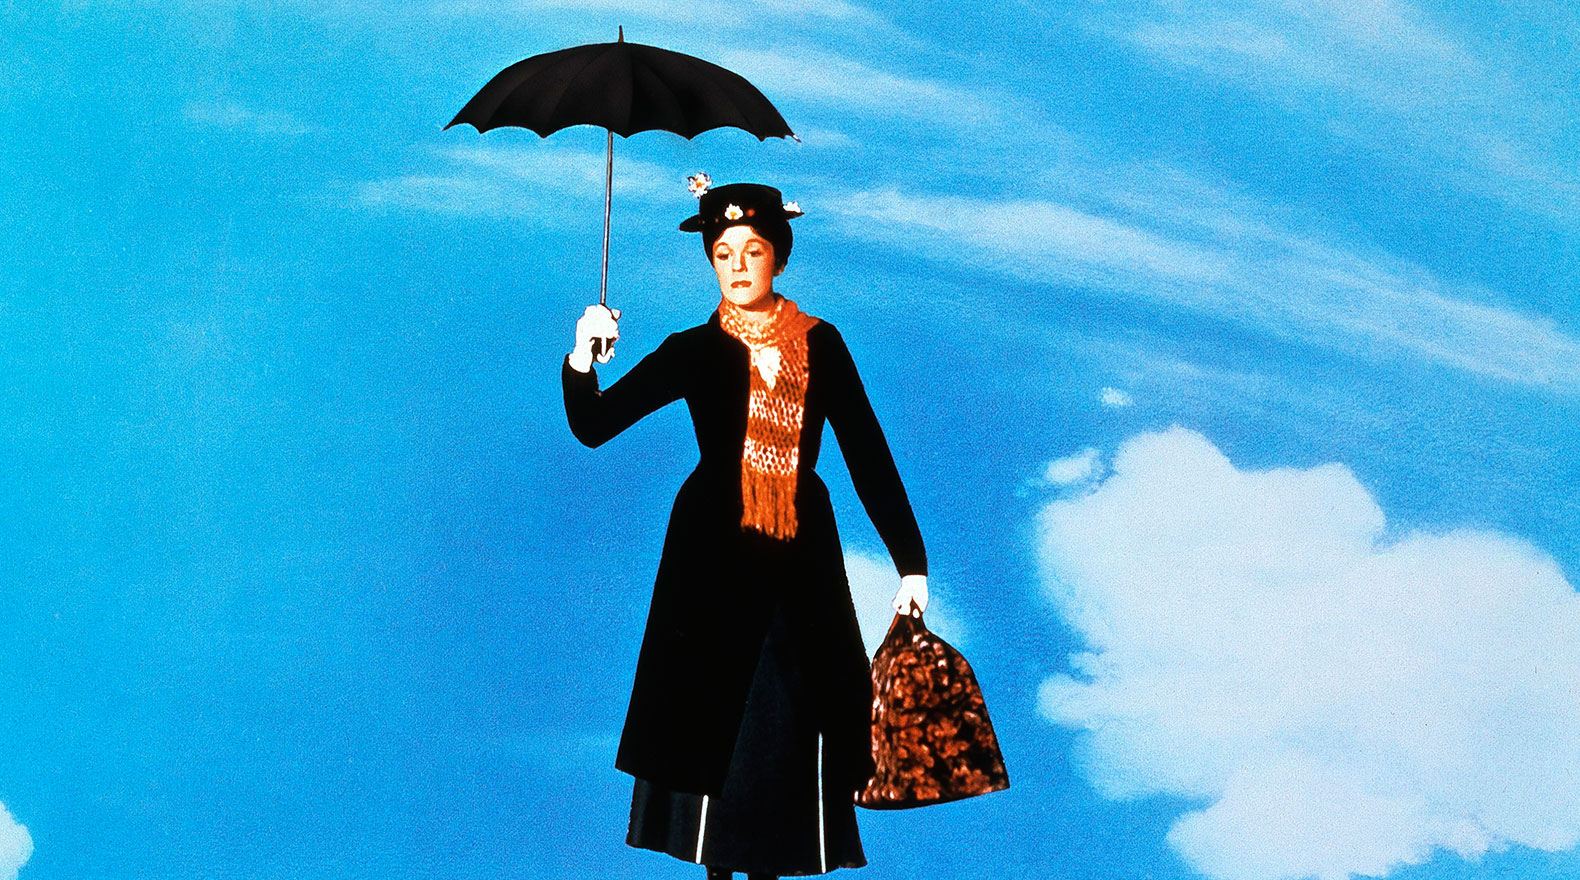 Let's talk about Disney's 'Mary Poppins' reboot, because we have feelings